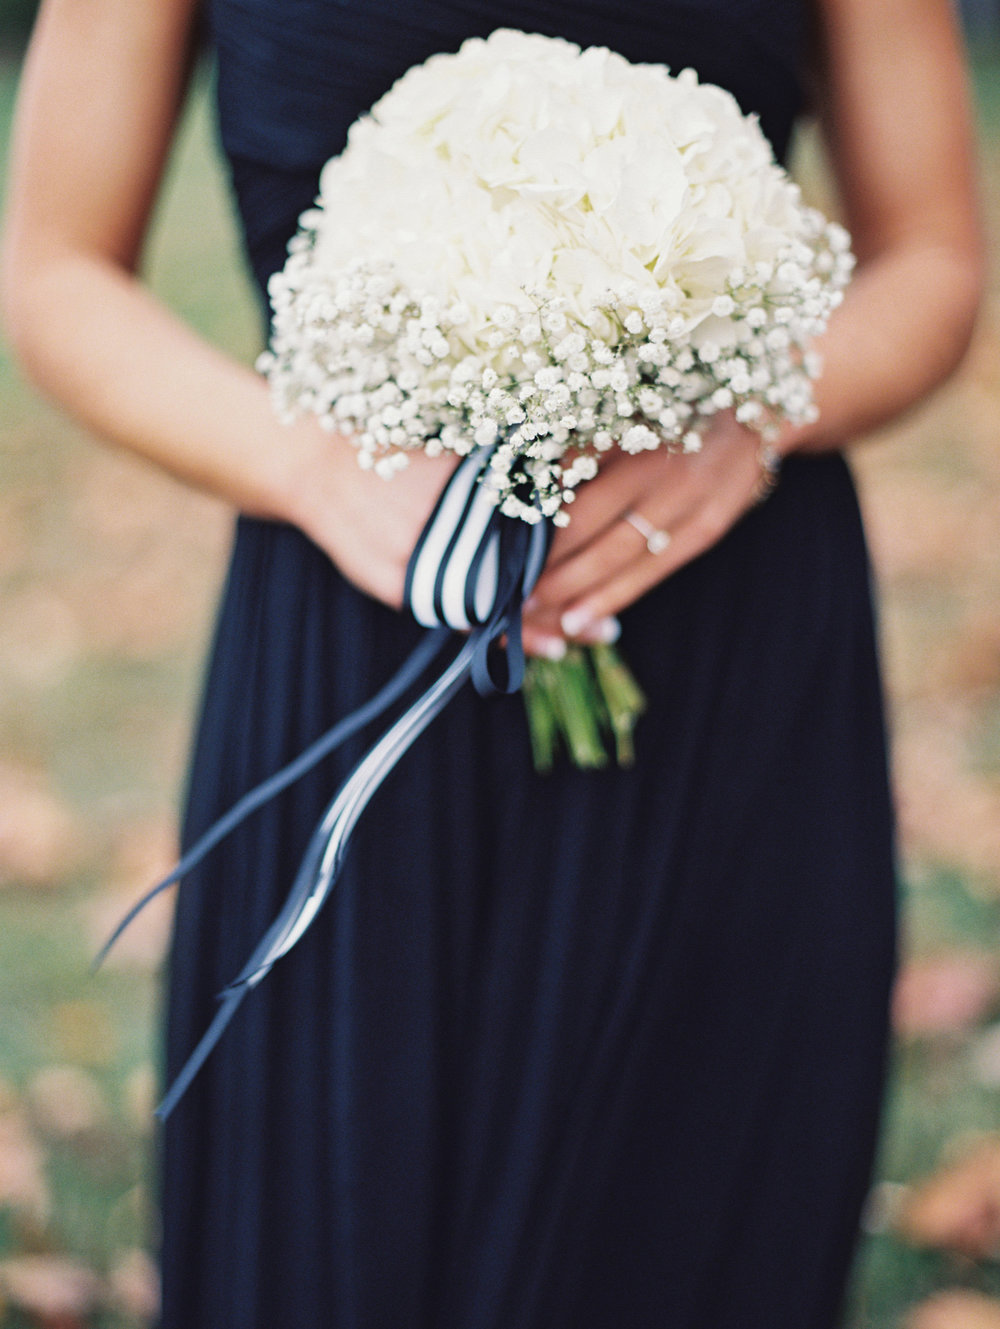 The bride loved baby's breath and wanted it incorporated in all of the bouquets.